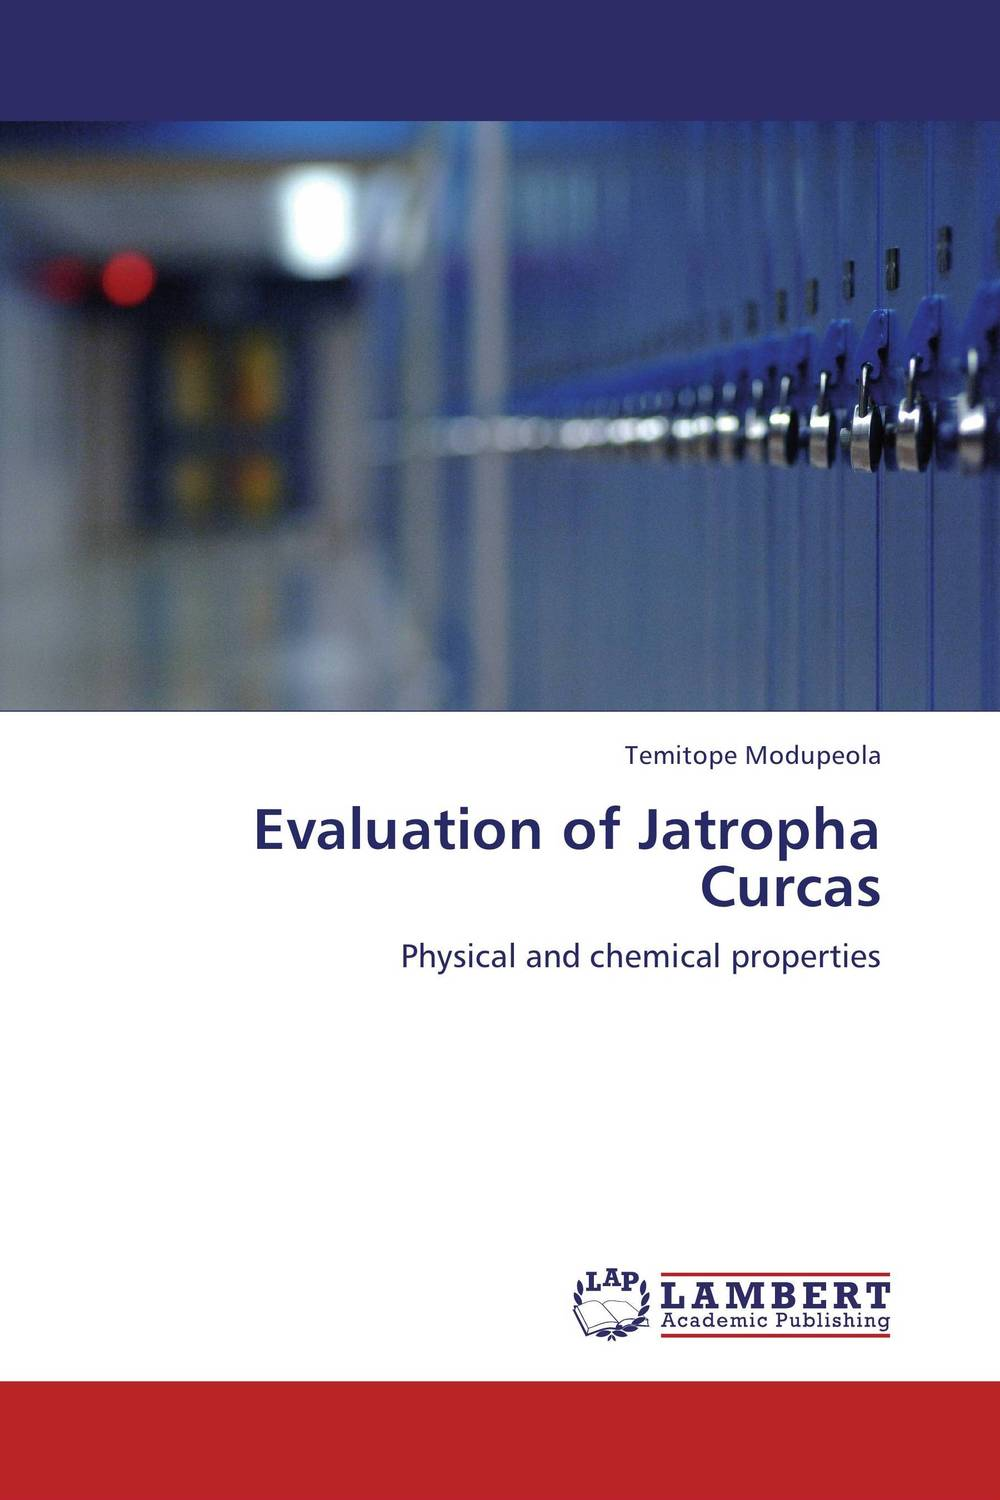 Evaluation of Jatropha Curcas muhammad firdaus sulaiman estimation of carbon footprint in jatropha curcas seed production